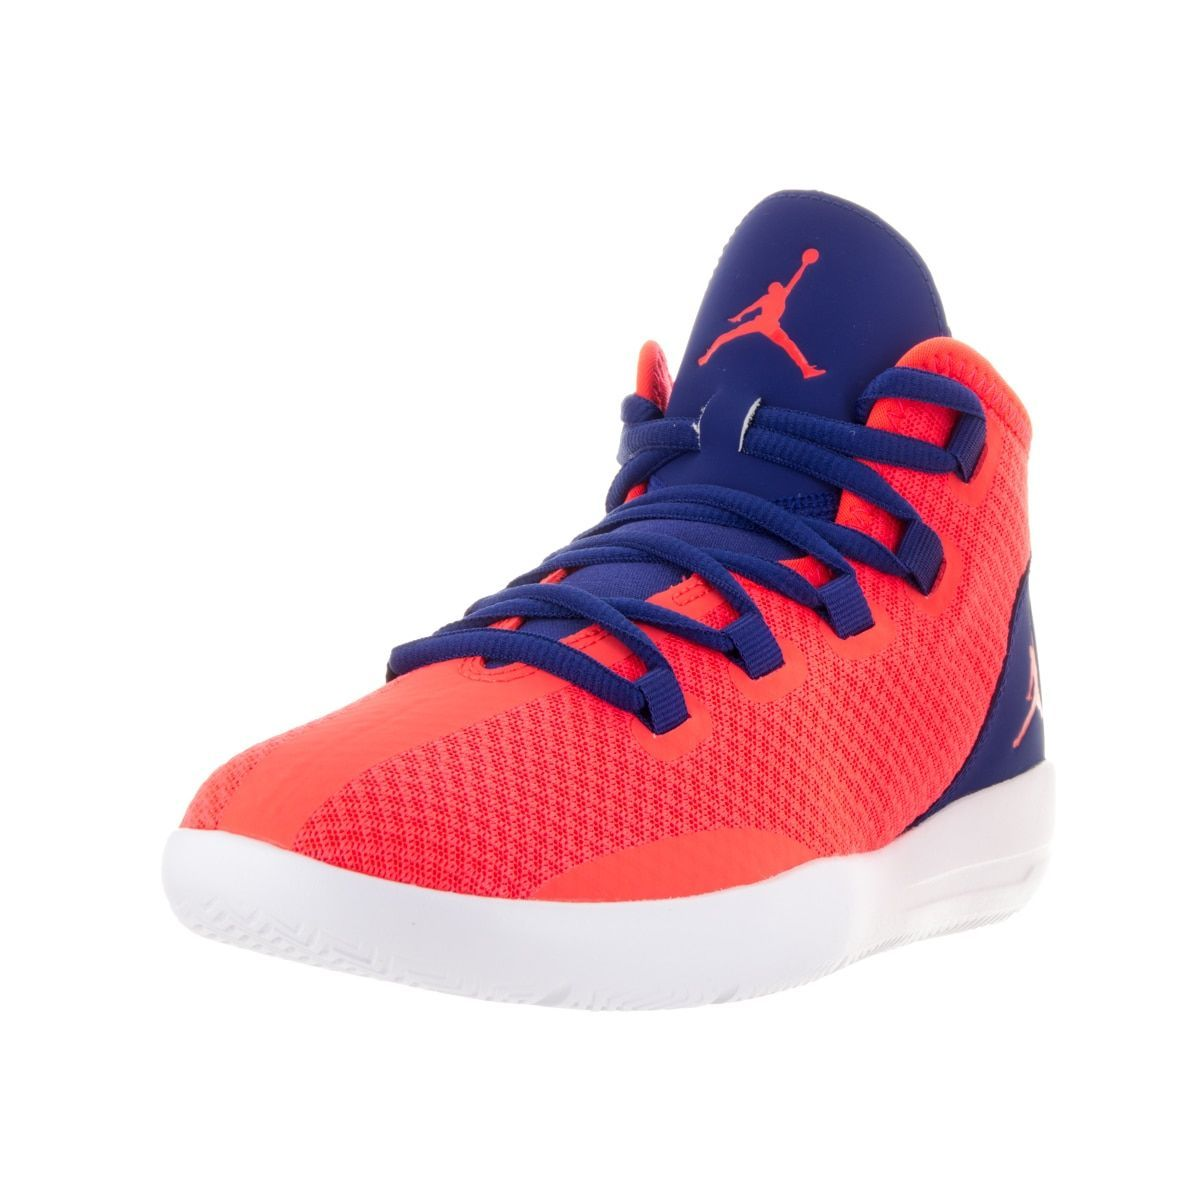 5a4d7646f53156 The Jordan Reveal Premium is introduced in a new colorway of wolf grey  orange…